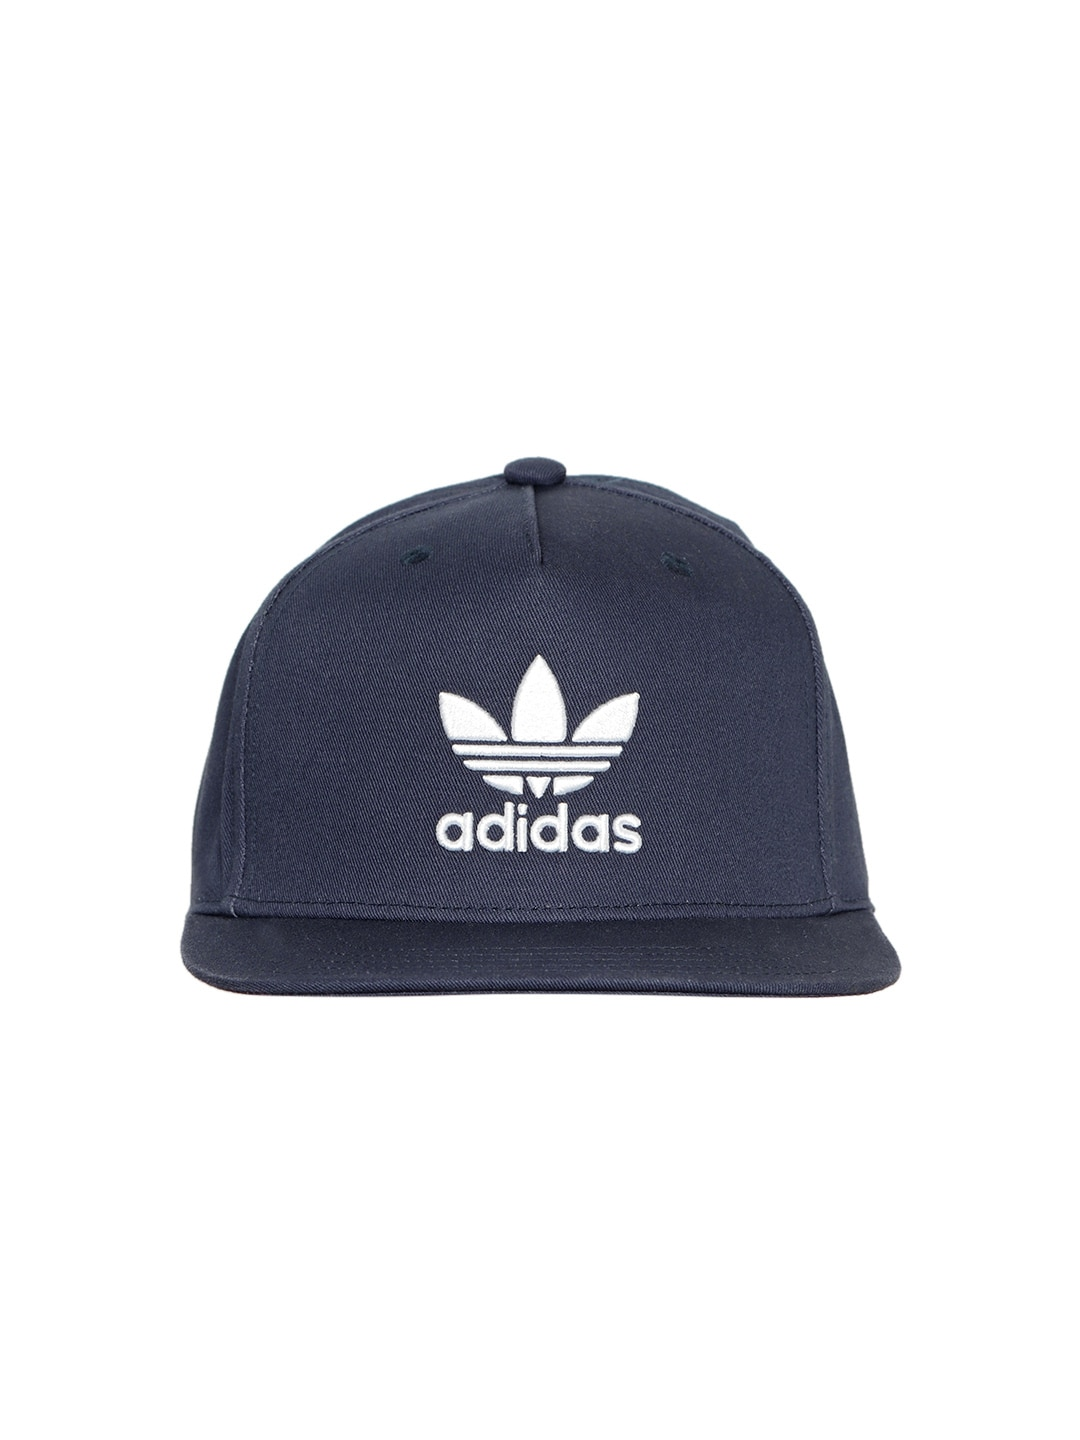 c999356e293 Adidas Liverpool Backpack Hat Caps - Buy Adidas Liverpool Backpack Hat Caps  online in India